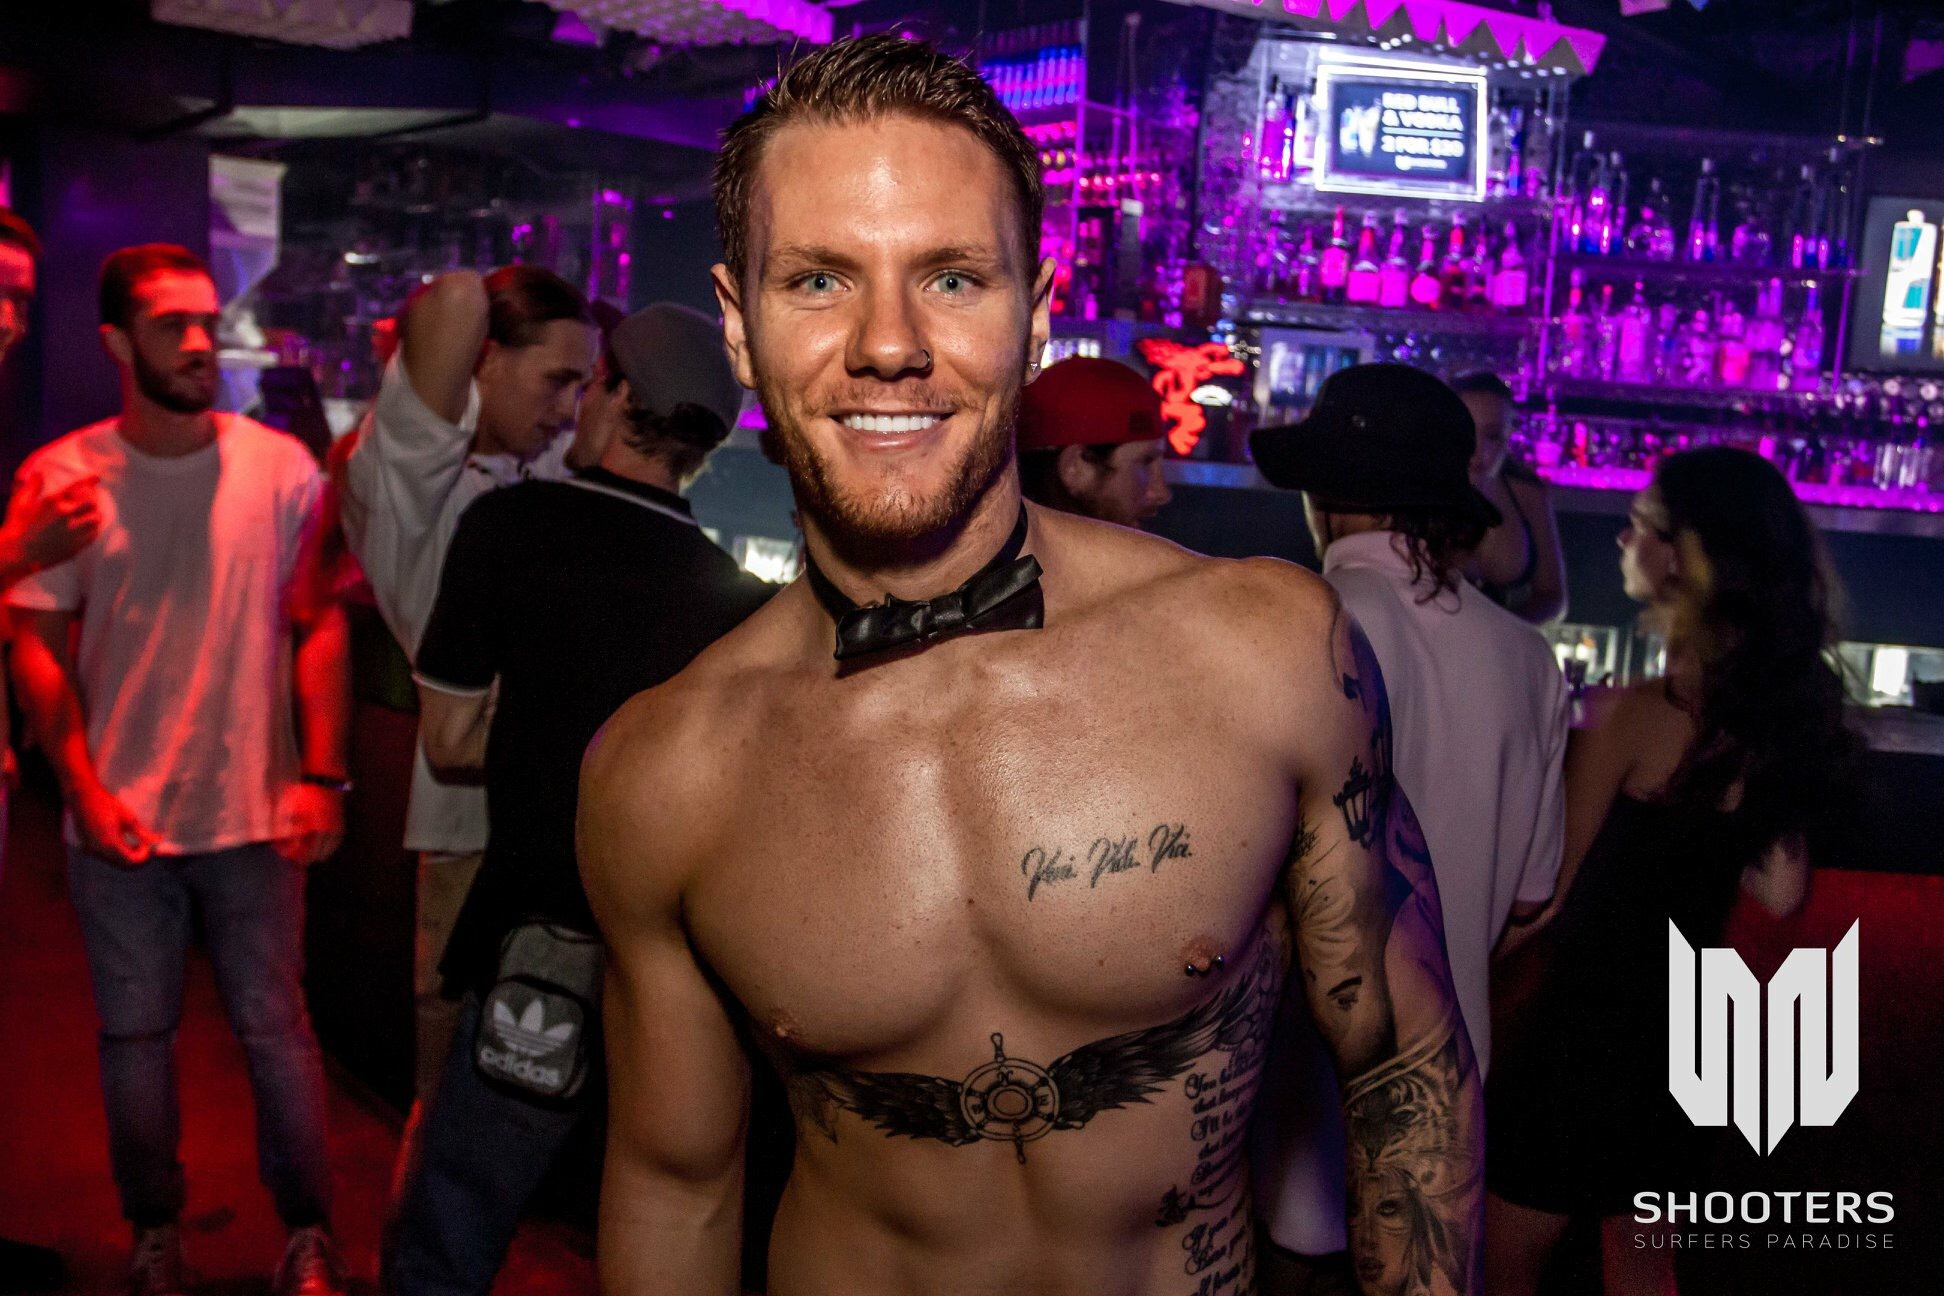 hire a hot topless waiter or topless bar tender and host for your next private function and party. gold coast. brisbane. byron bay. coolangatta.